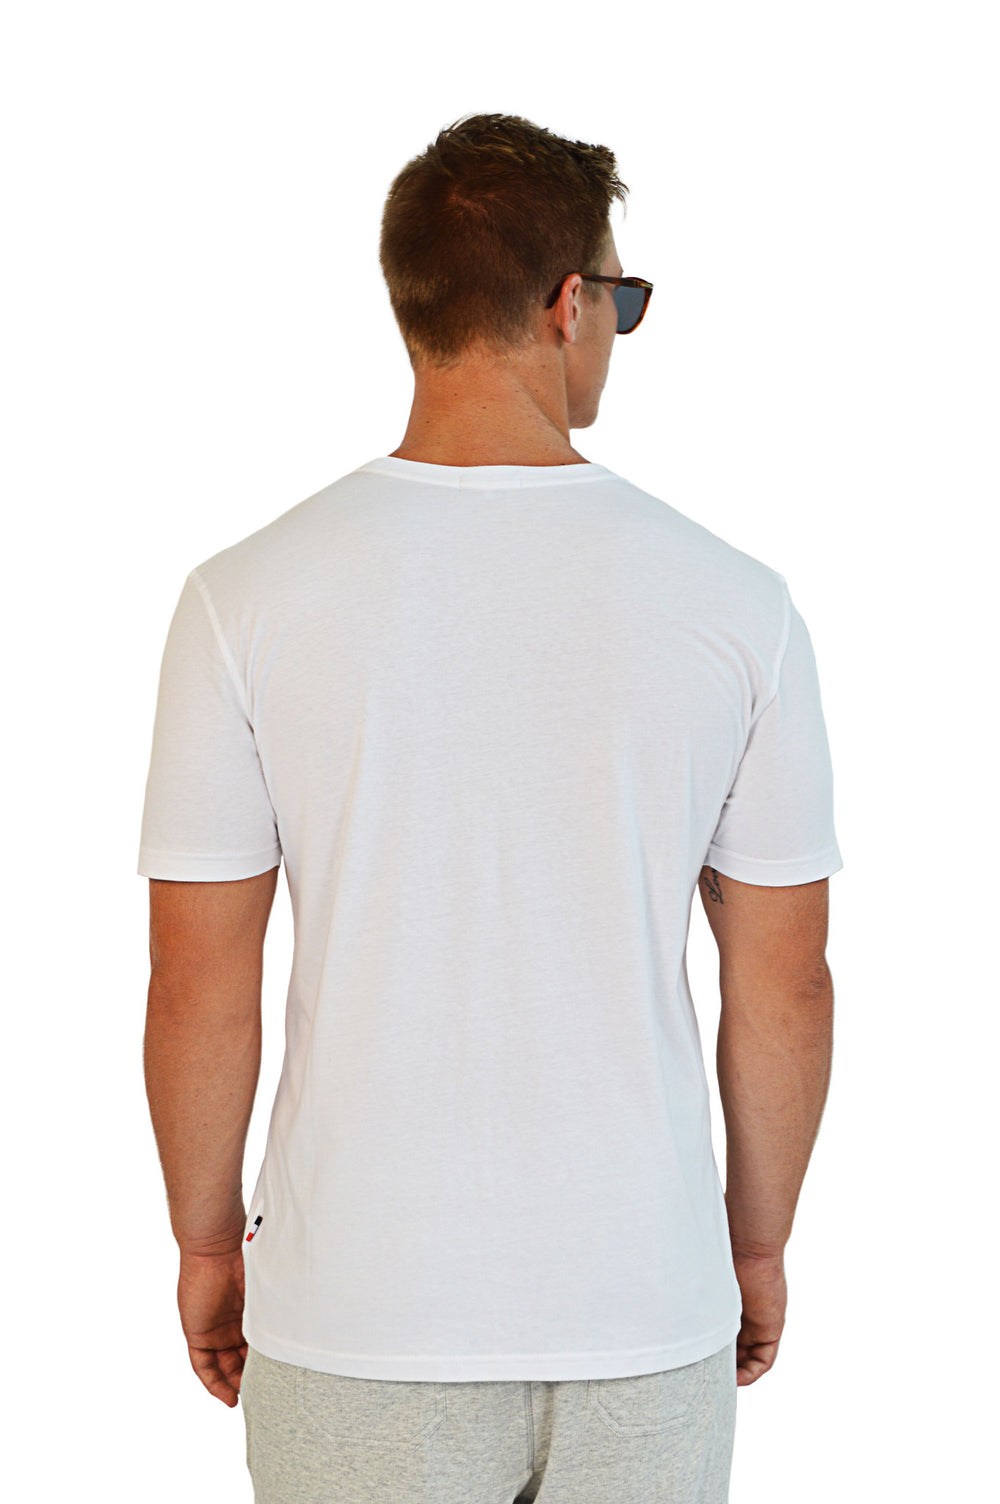 back view white t-shirt